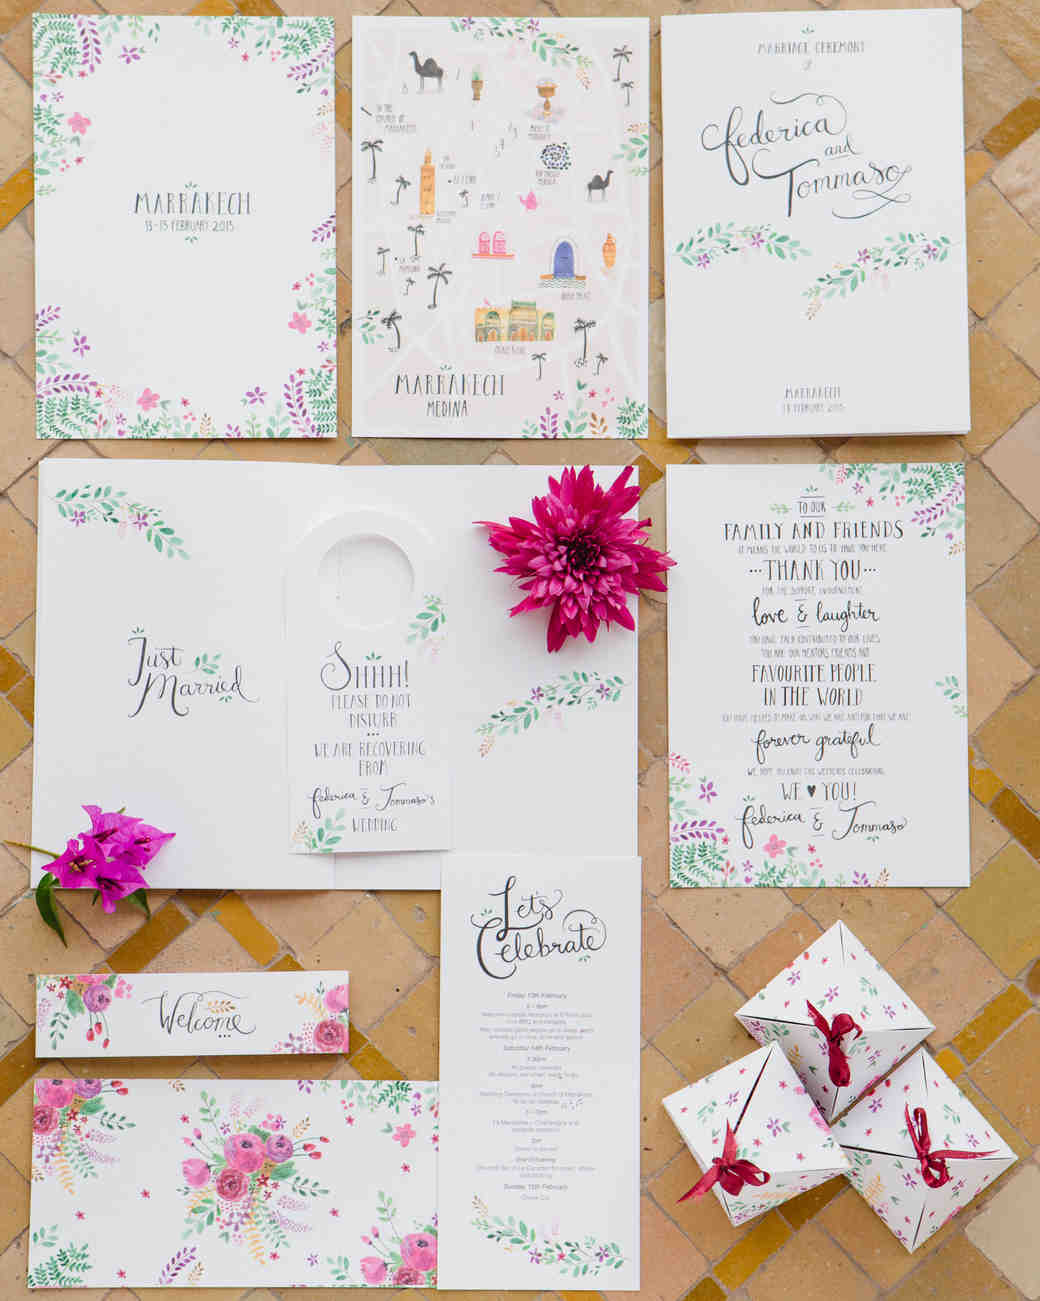 Wedding Stationery Styles for Every Personality | Martha Stewart ...